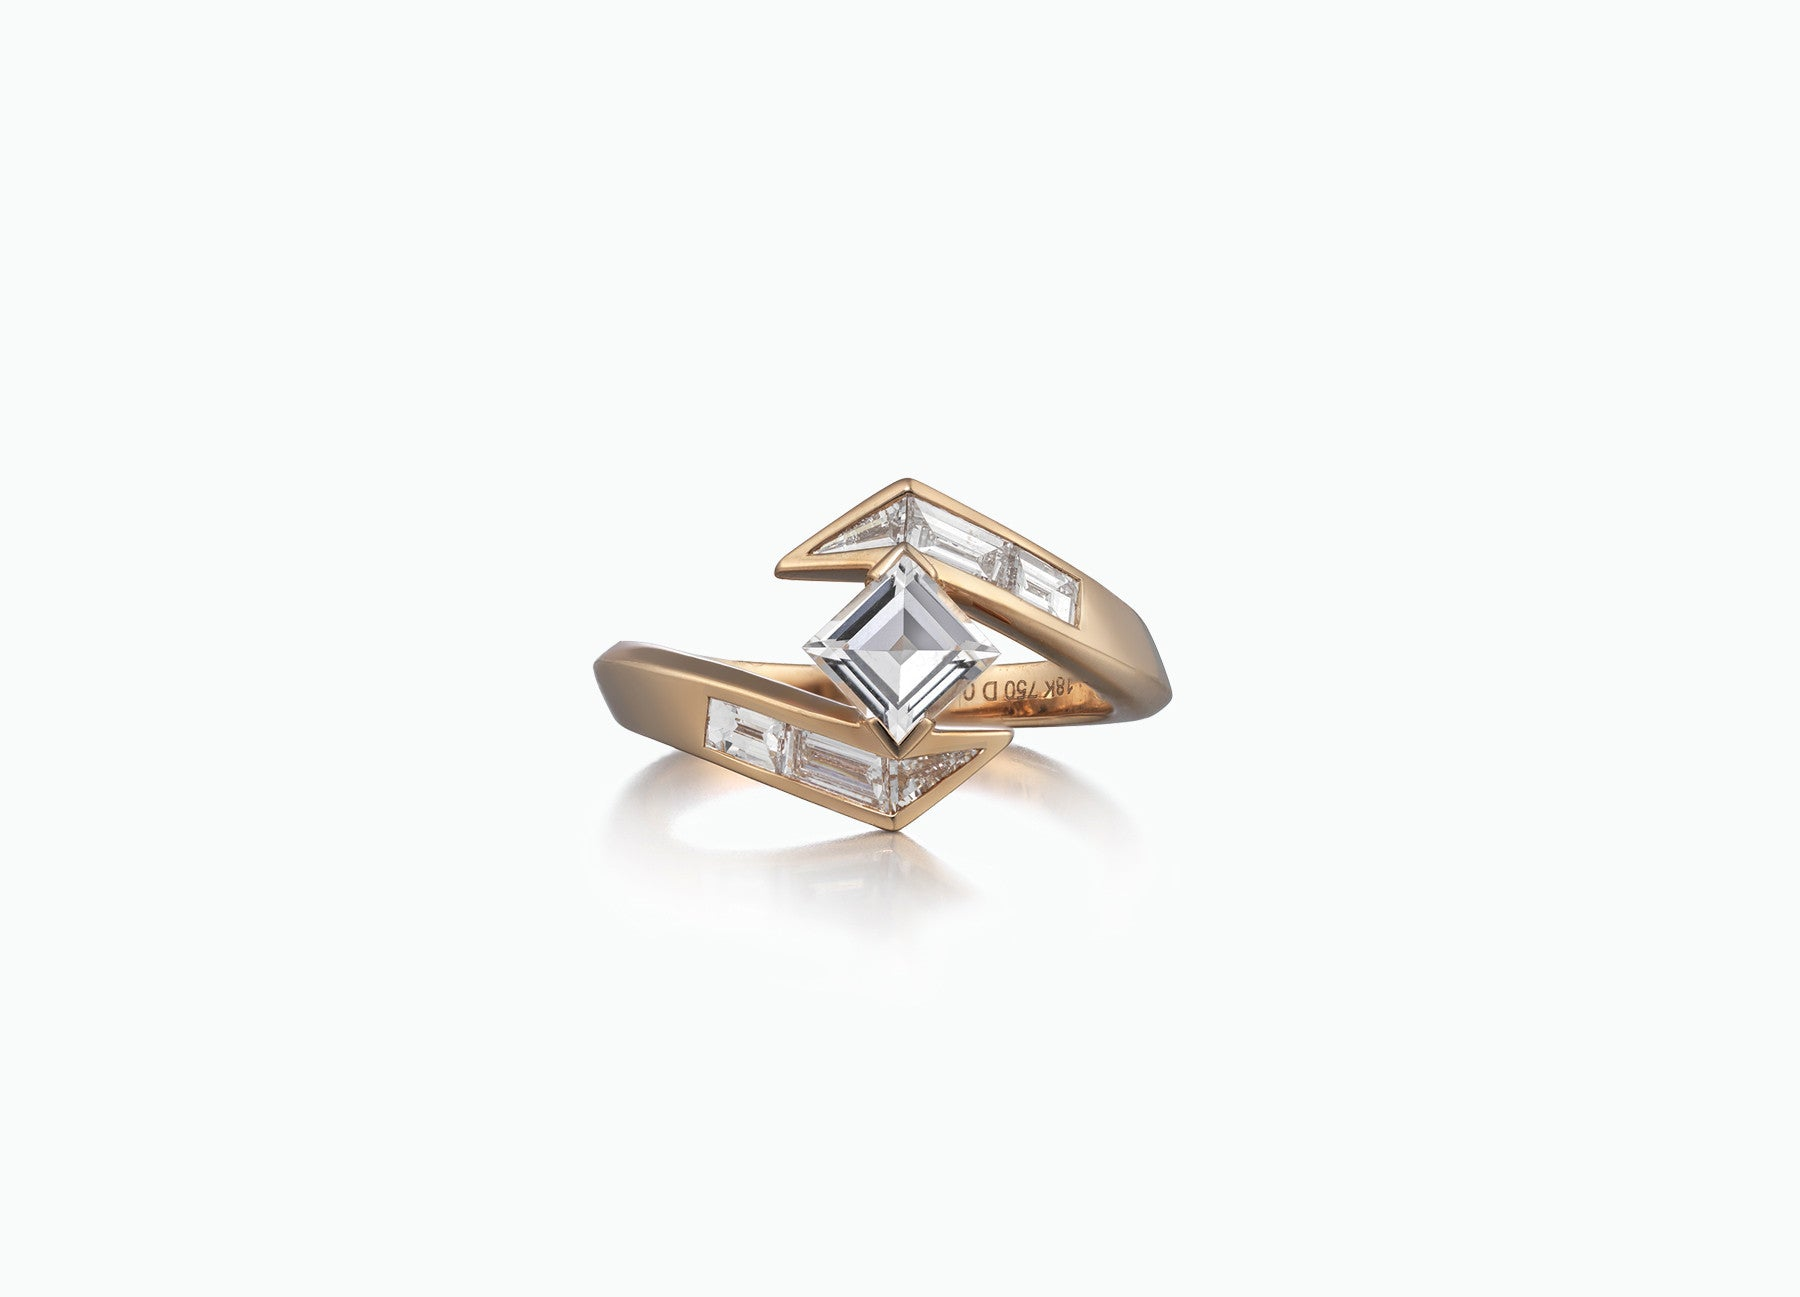 STELLAR ENGAGEMENT RING